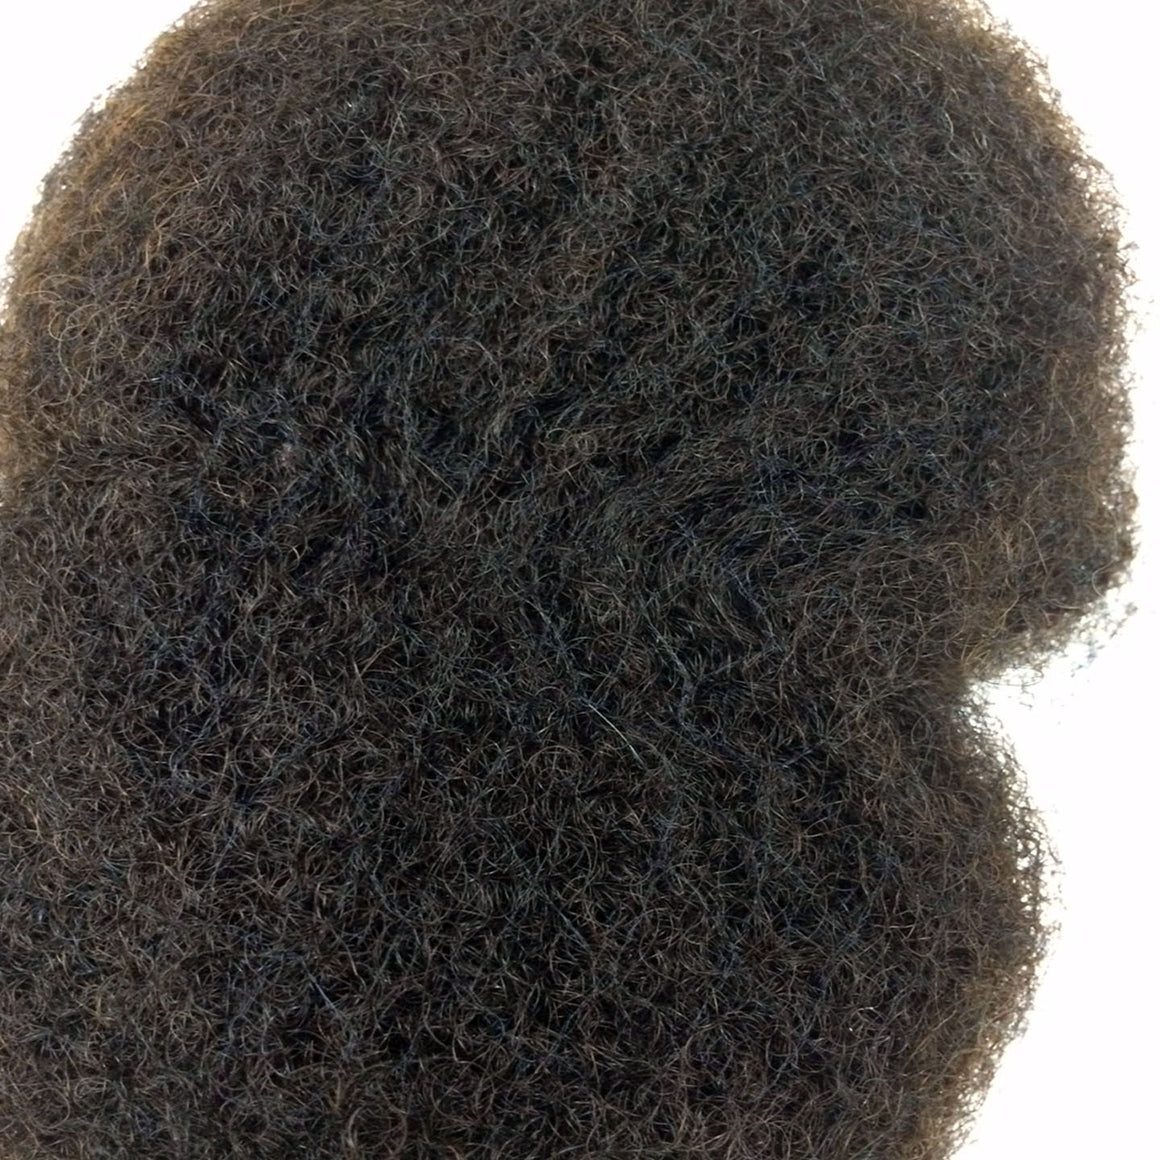 "Afro Kinky Human Hair for Locs, Twists and Dread Hair 18"" - Hairesthetic"